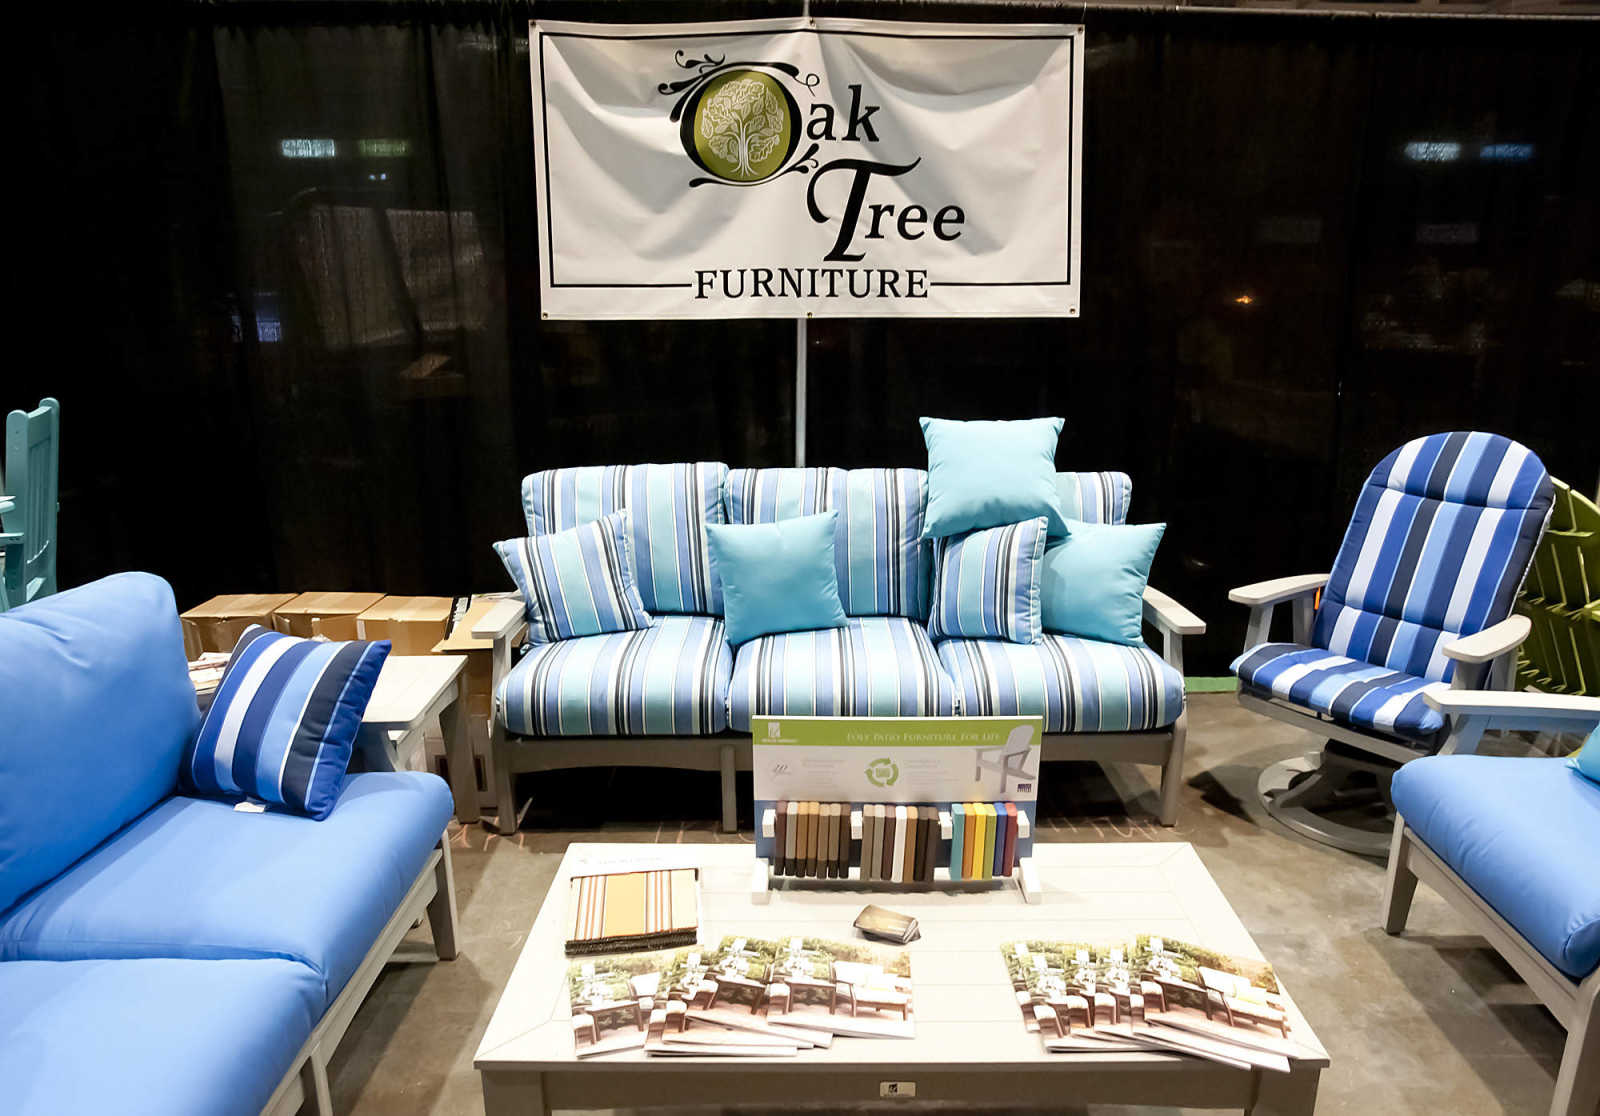 The Oak Tree Furniture Booth At The 2014 Heartland Home And Garden Show  Saturday, March 22, At The Show Me Center. The Show Featured Over 100  Exhibits.